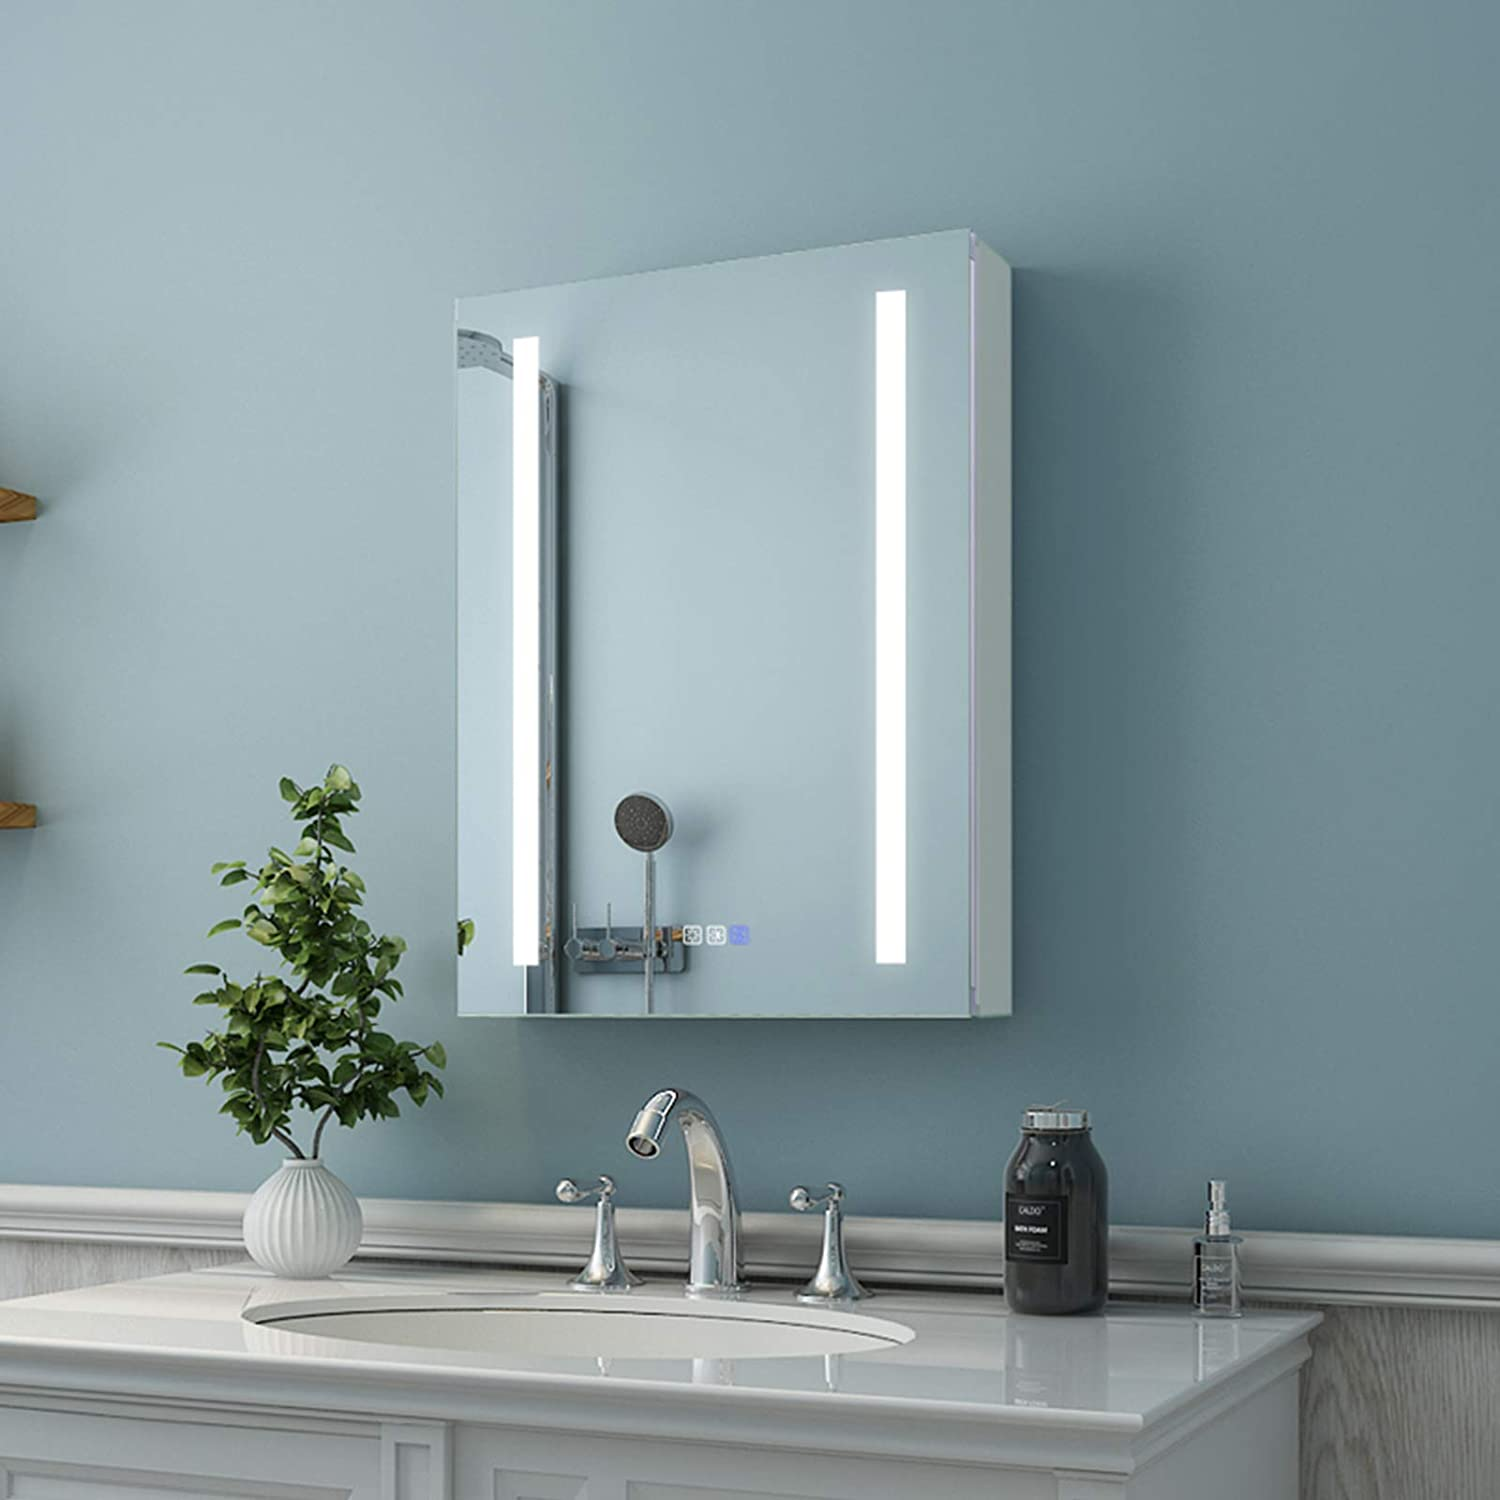 ES-DIY LED Long-awaited Lighted Bathroom Medicine Cabinet New color 20 x with 2 Mirror